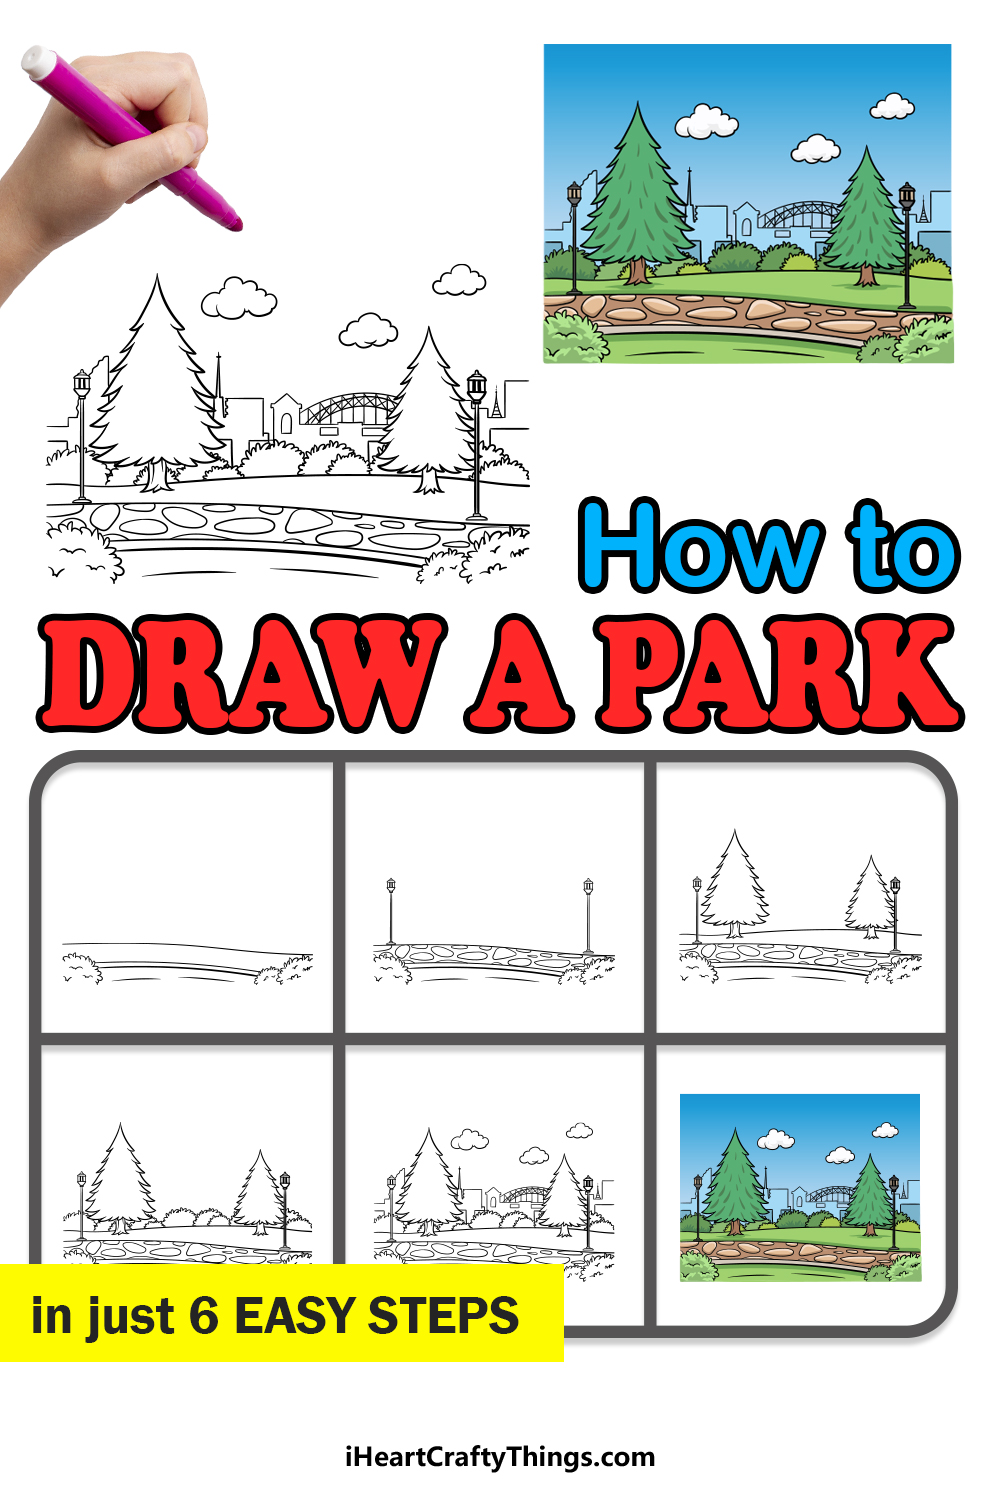 how to draw a park in 6 easy steps